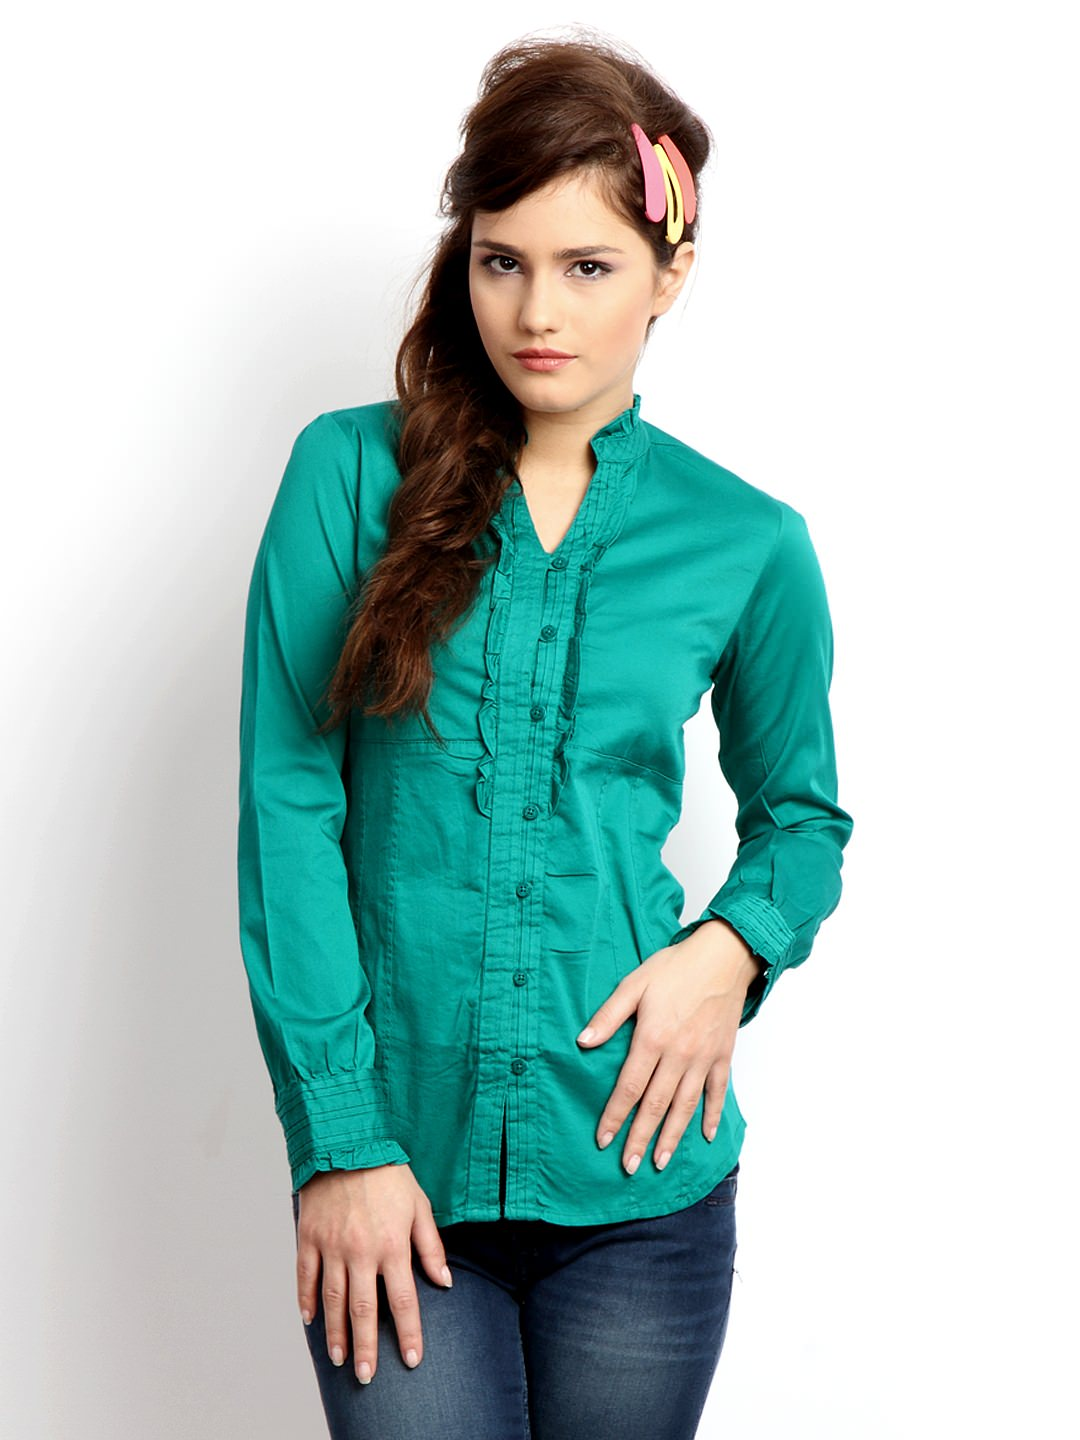 Exclusive Shirts,Tops and tunics For Women By Top Brands